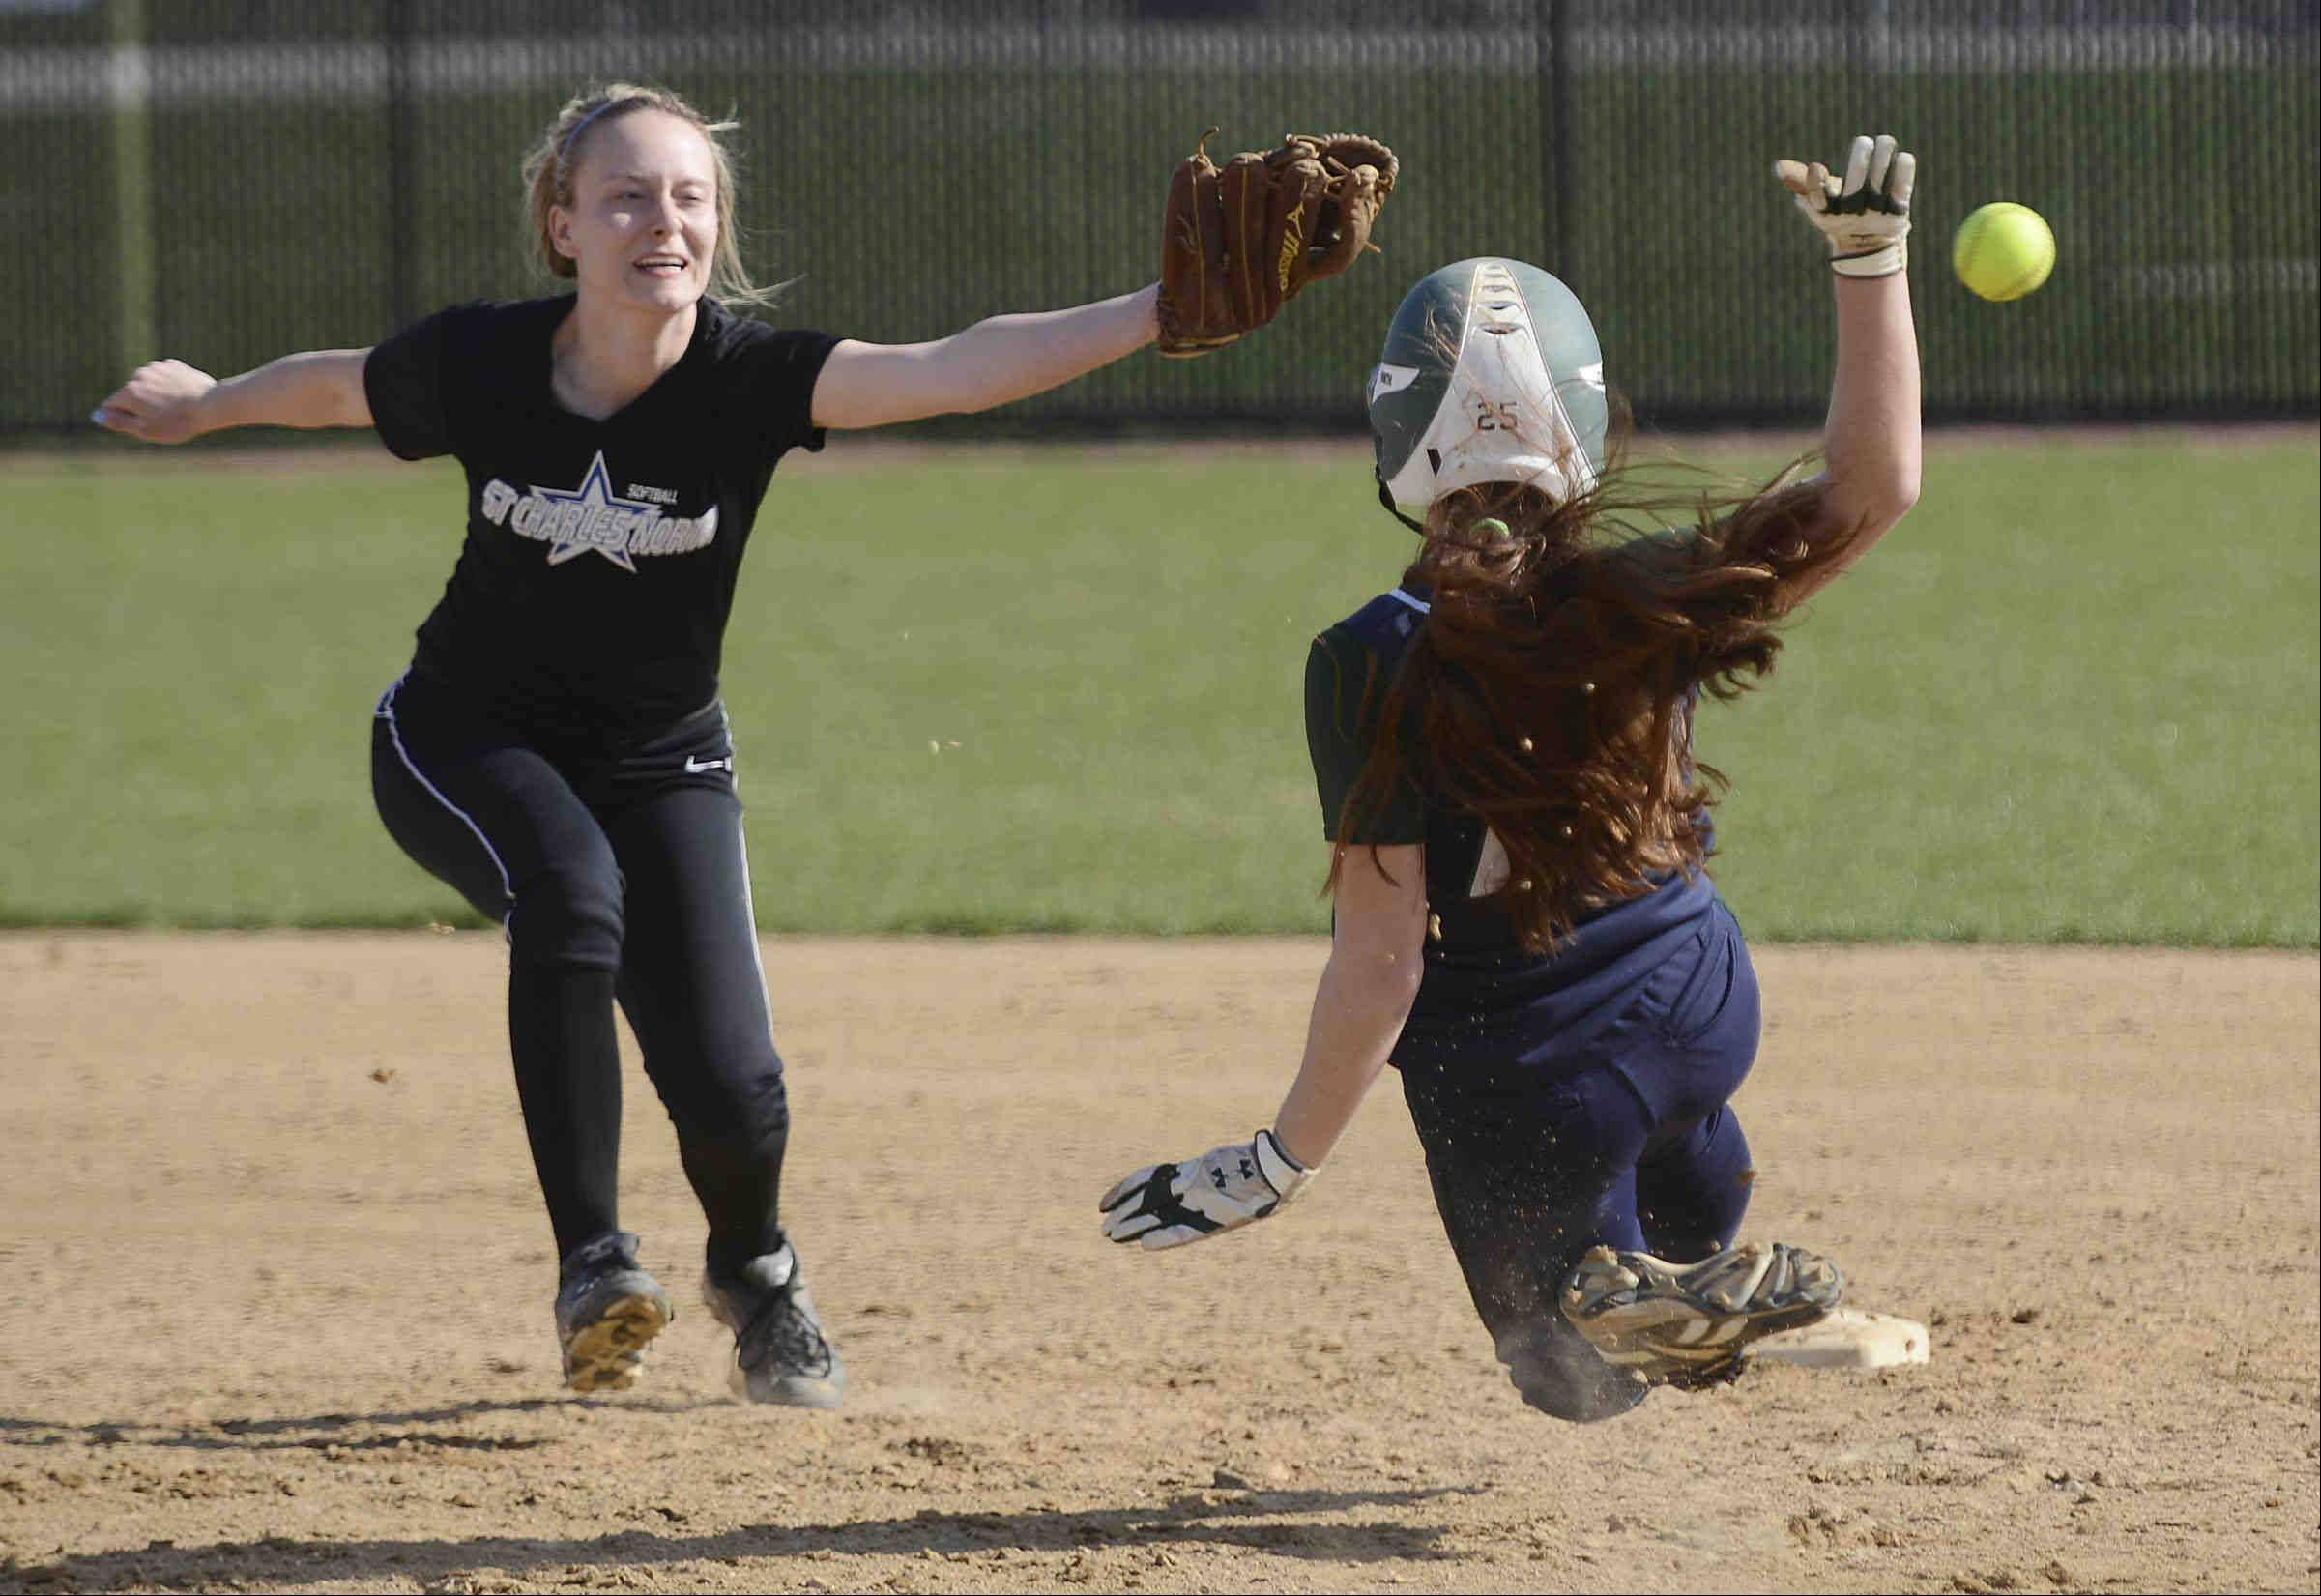 St. Charles North shortstop Mickey Goetz can't reach a wide throw as Bartlett's Kayla Haberstich steals second base Monday in St. Charles. It didn't matter as the batter had struck out on the pitch for the third out of the first inning.